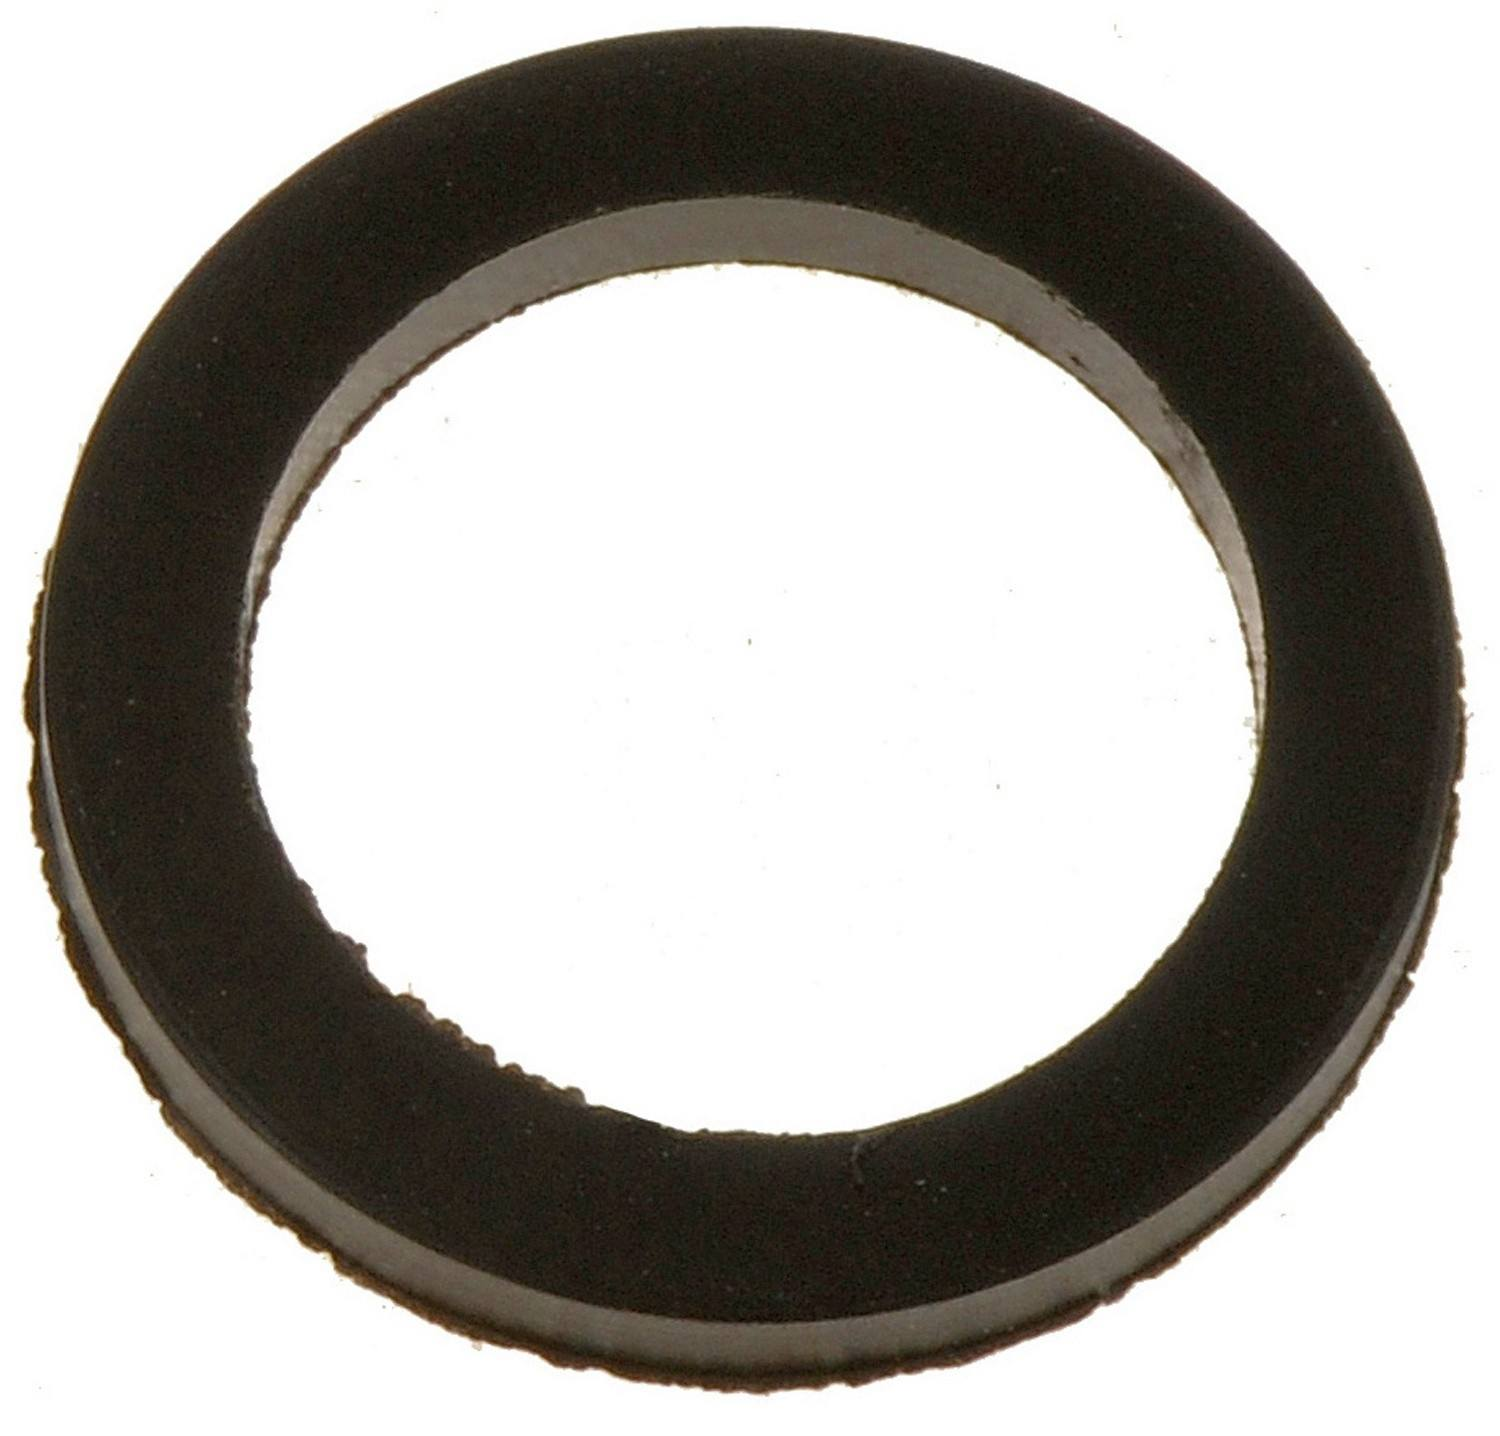 DORMAN - AUTOGRADE - Engine Oil Drain Plug Gasket - DOC 097-026.1